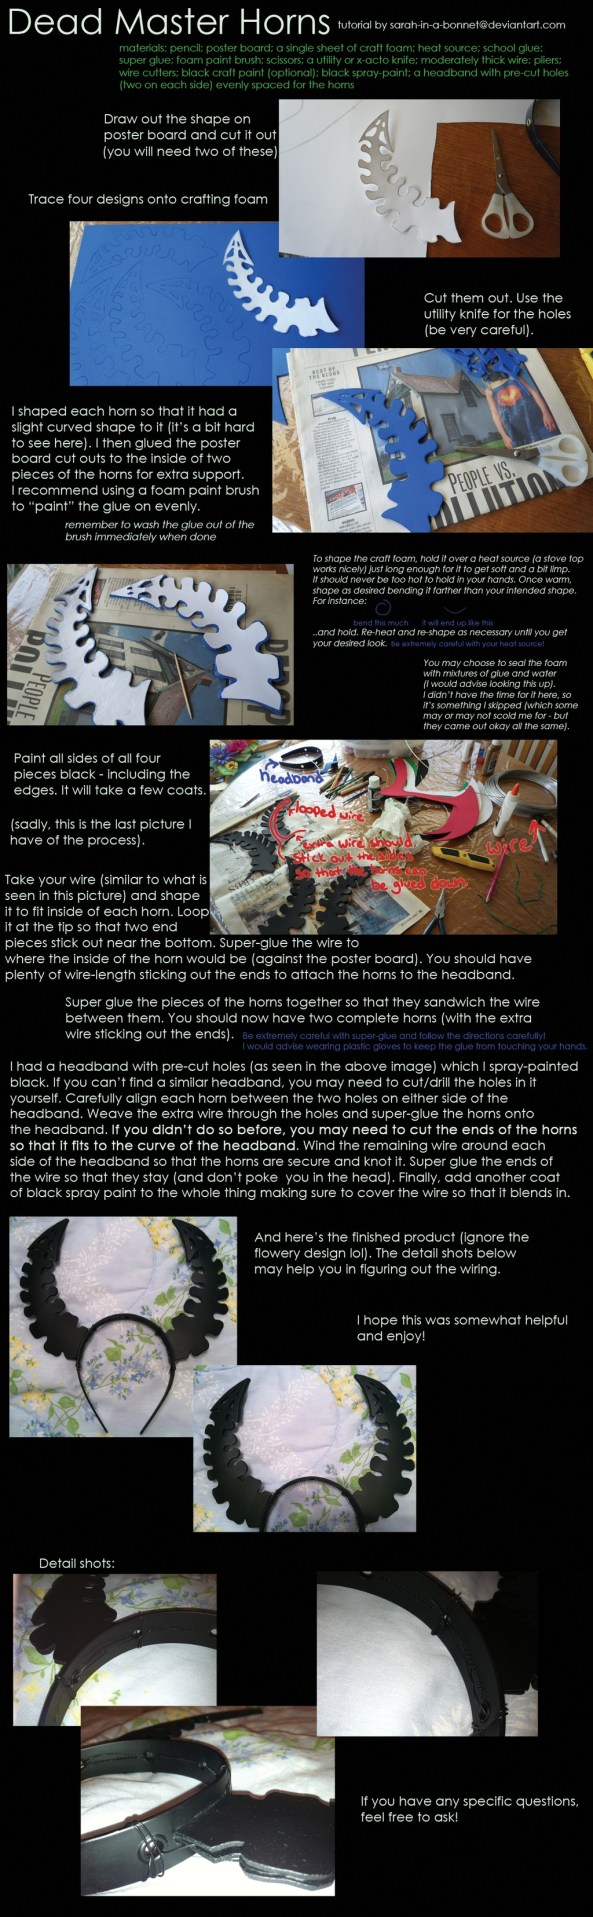 How to Make Black Rock Shooter Wiki Dead Master Horns for Cosplay_1